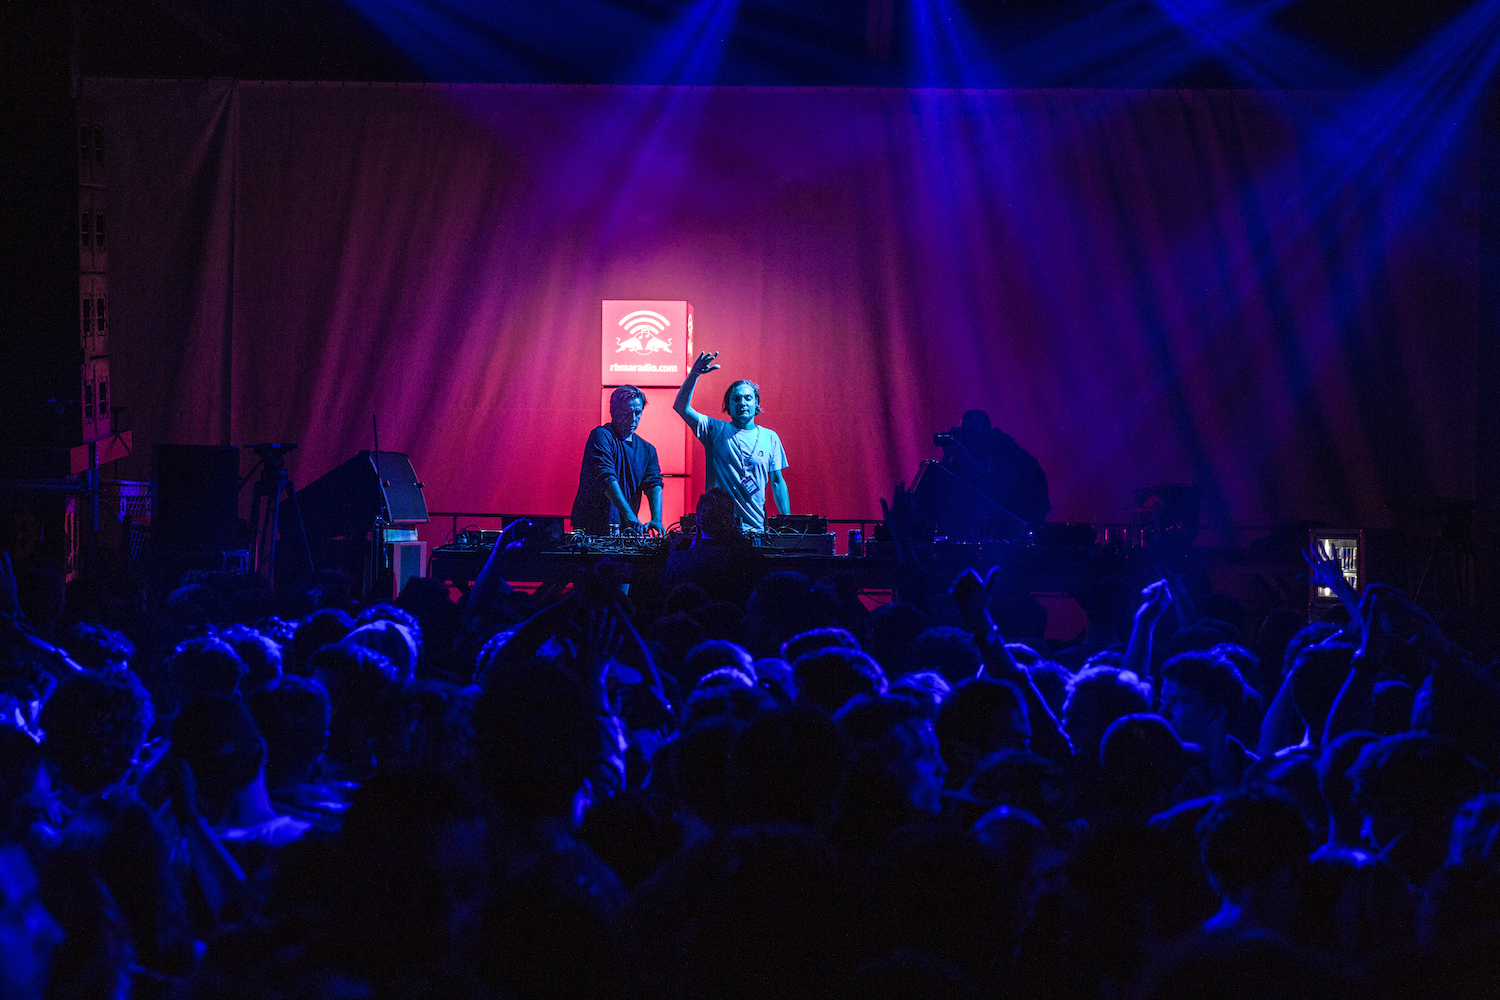 Laurent Garnier and MCDE making the show at Red Bull Music Academy Stage at Nuits Sonores in Lyon, France on May 29th, 2014